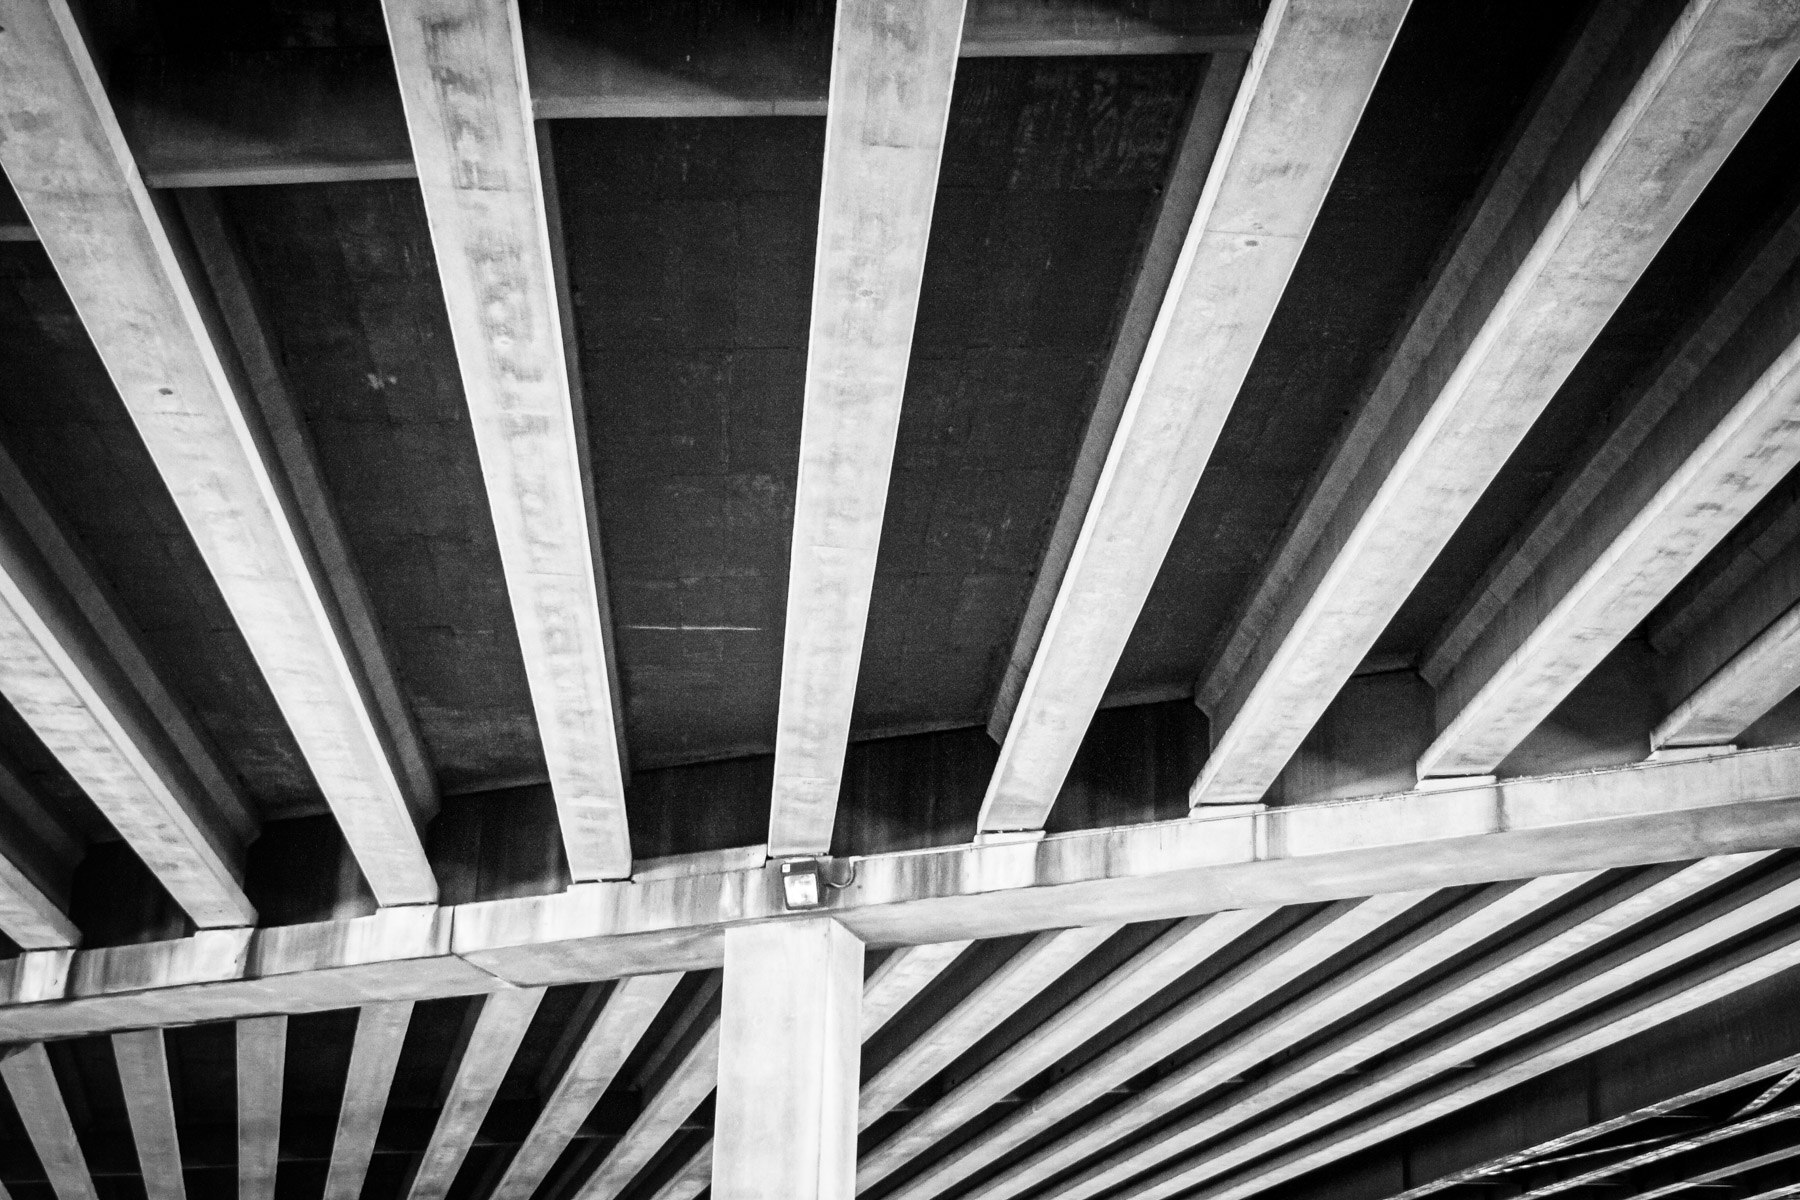 The underside of Dallas' Woodall Rogers Freeway between Downtown and Uptown.